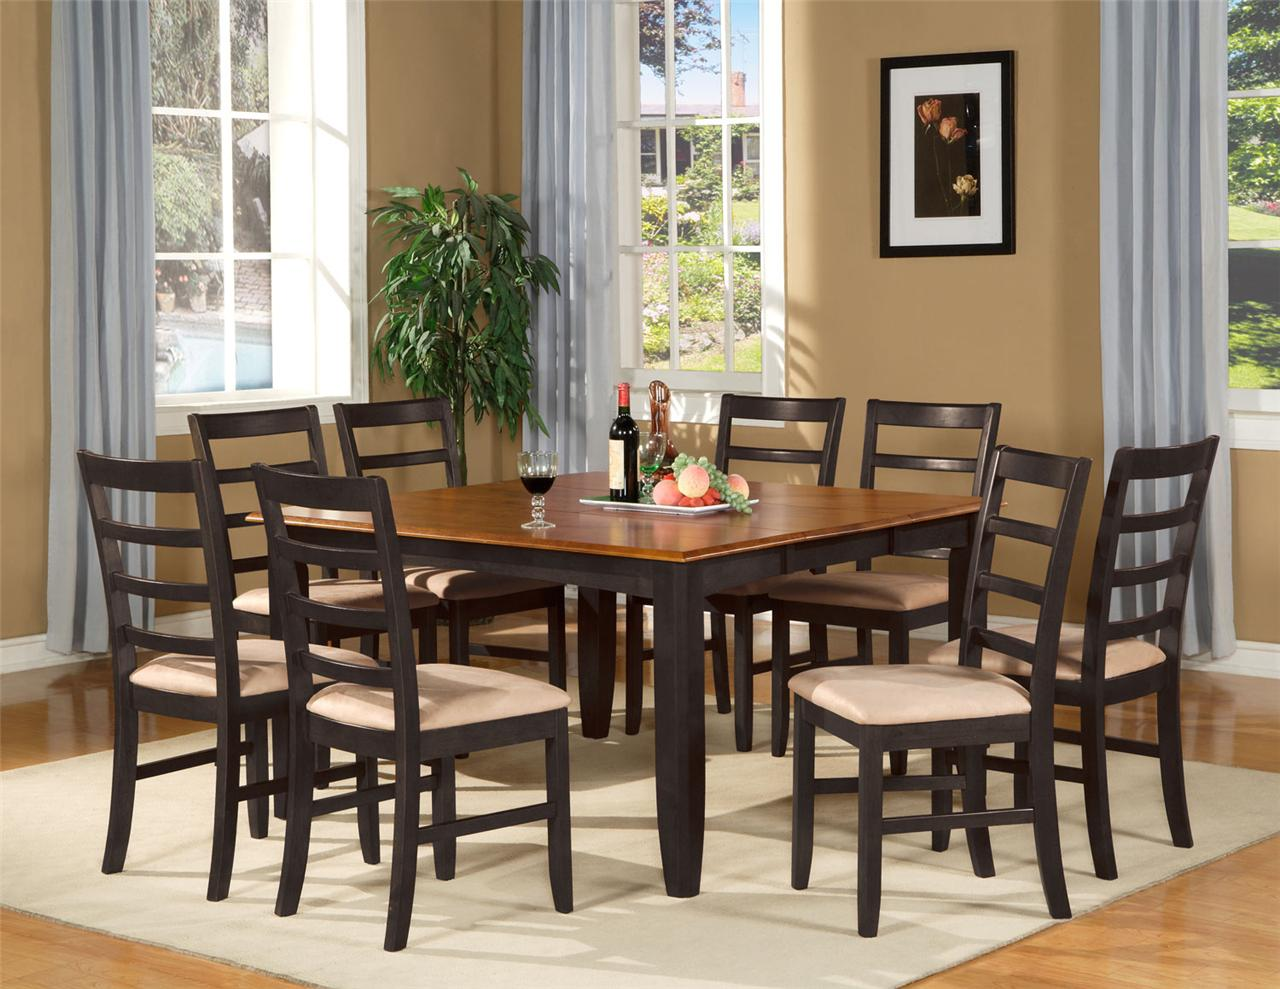 Dining Room Tables Contemporary Square Dining Table Modern Square Dining Table Contemporary Square